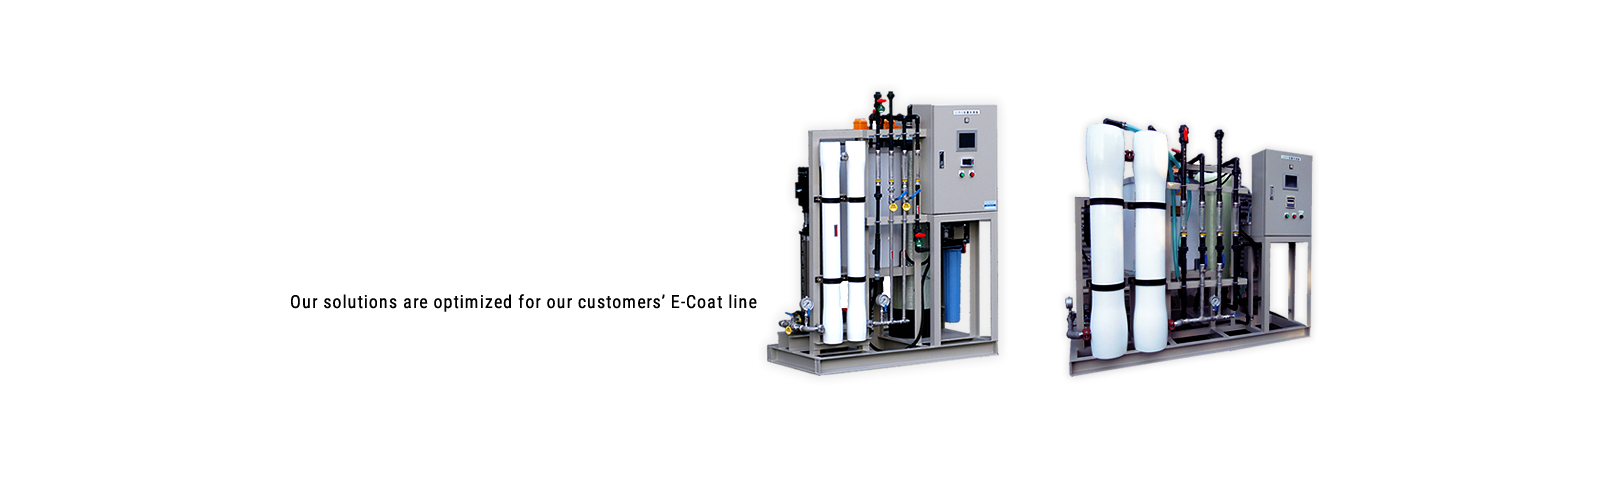 Customized solutions for each customers